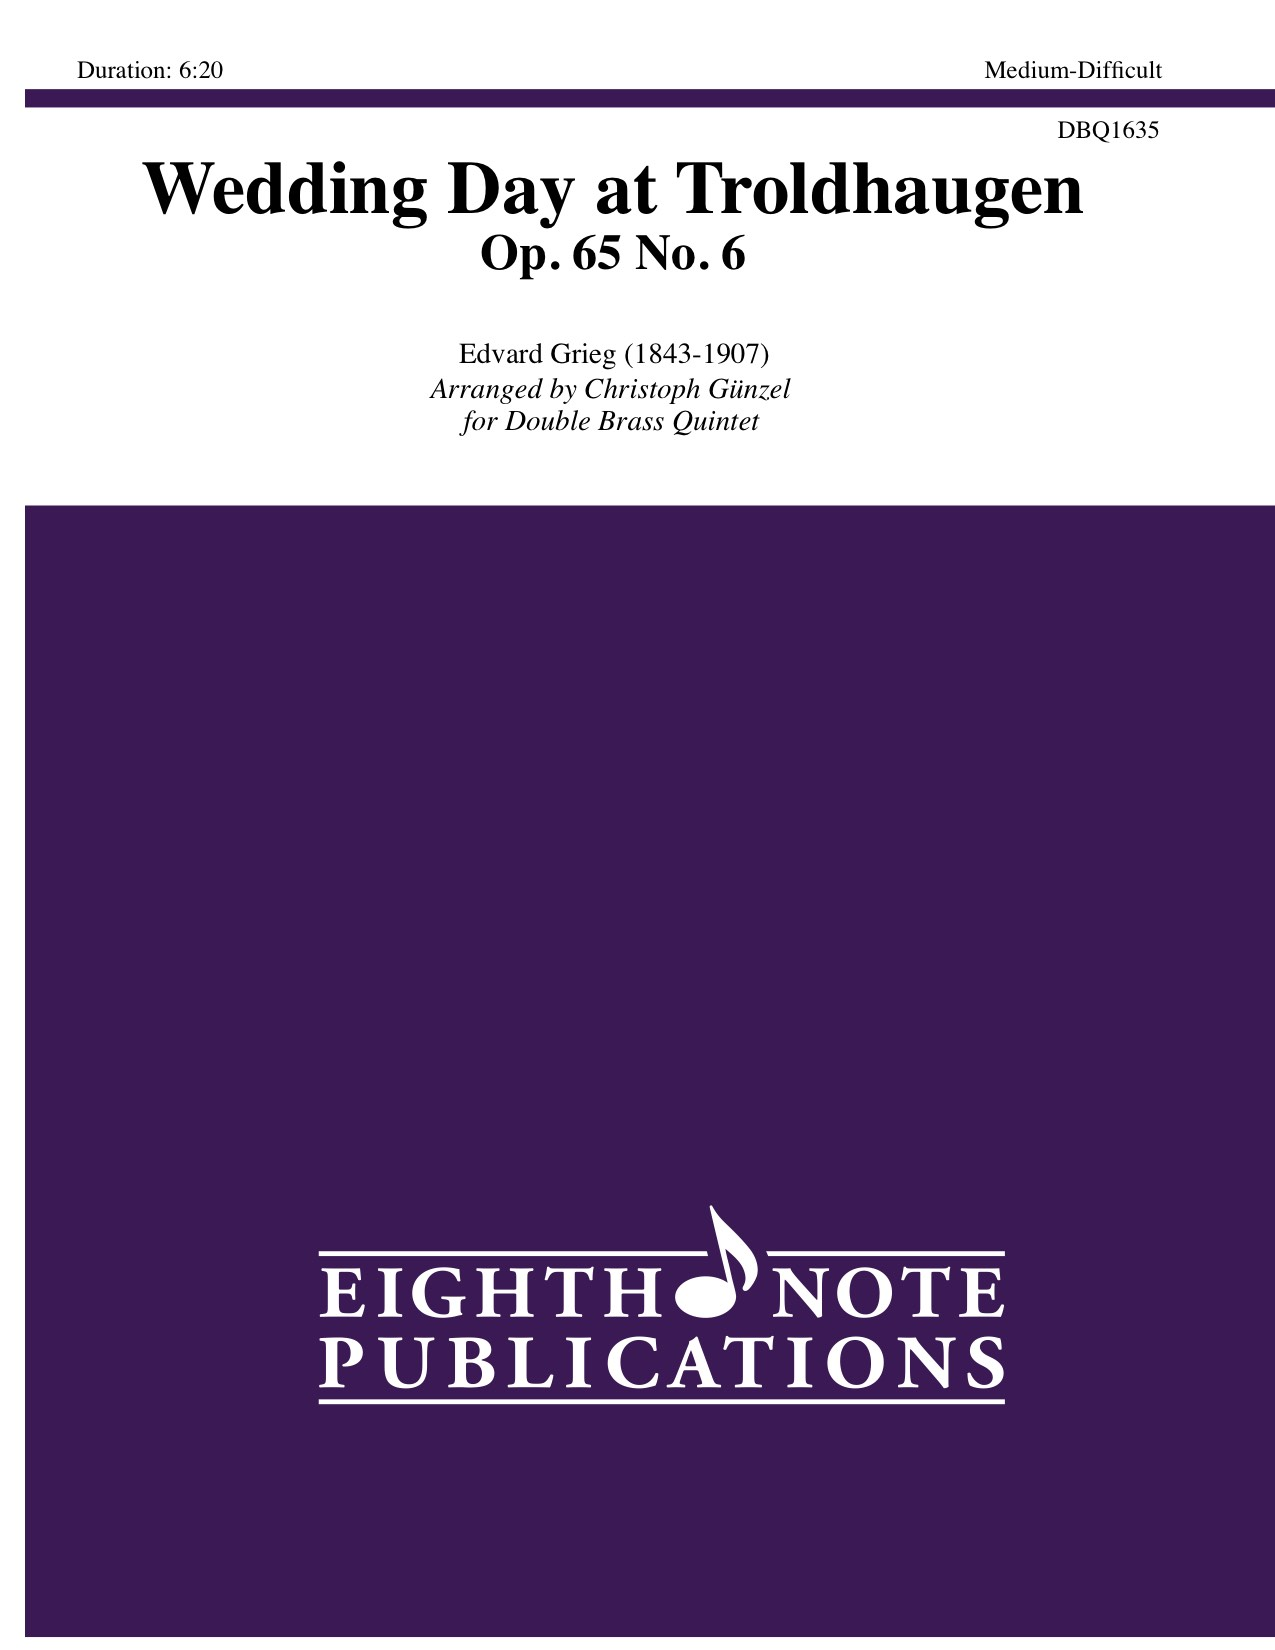 Wedding Day at Troldhaugen - Op. 65 No. 6 - Edvard Grieg